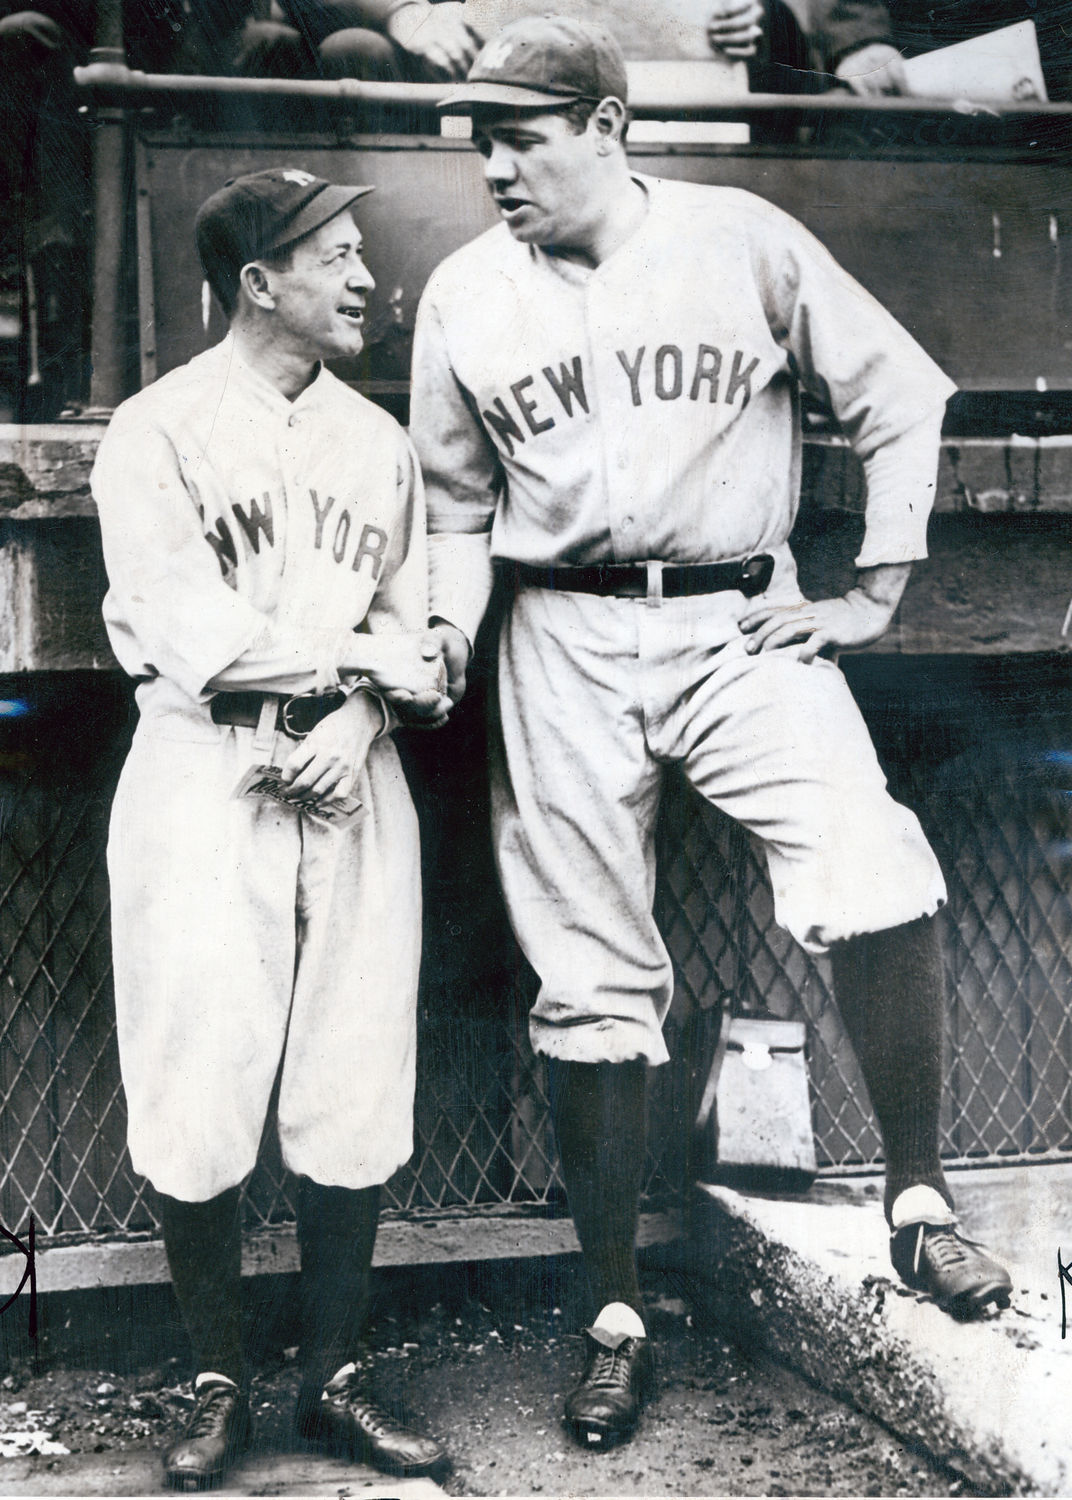 f42ae2623 New York manager Miller Huggins with Babe Ruth - BL-1499-68 (National  Baseball Hall of Fame Library)